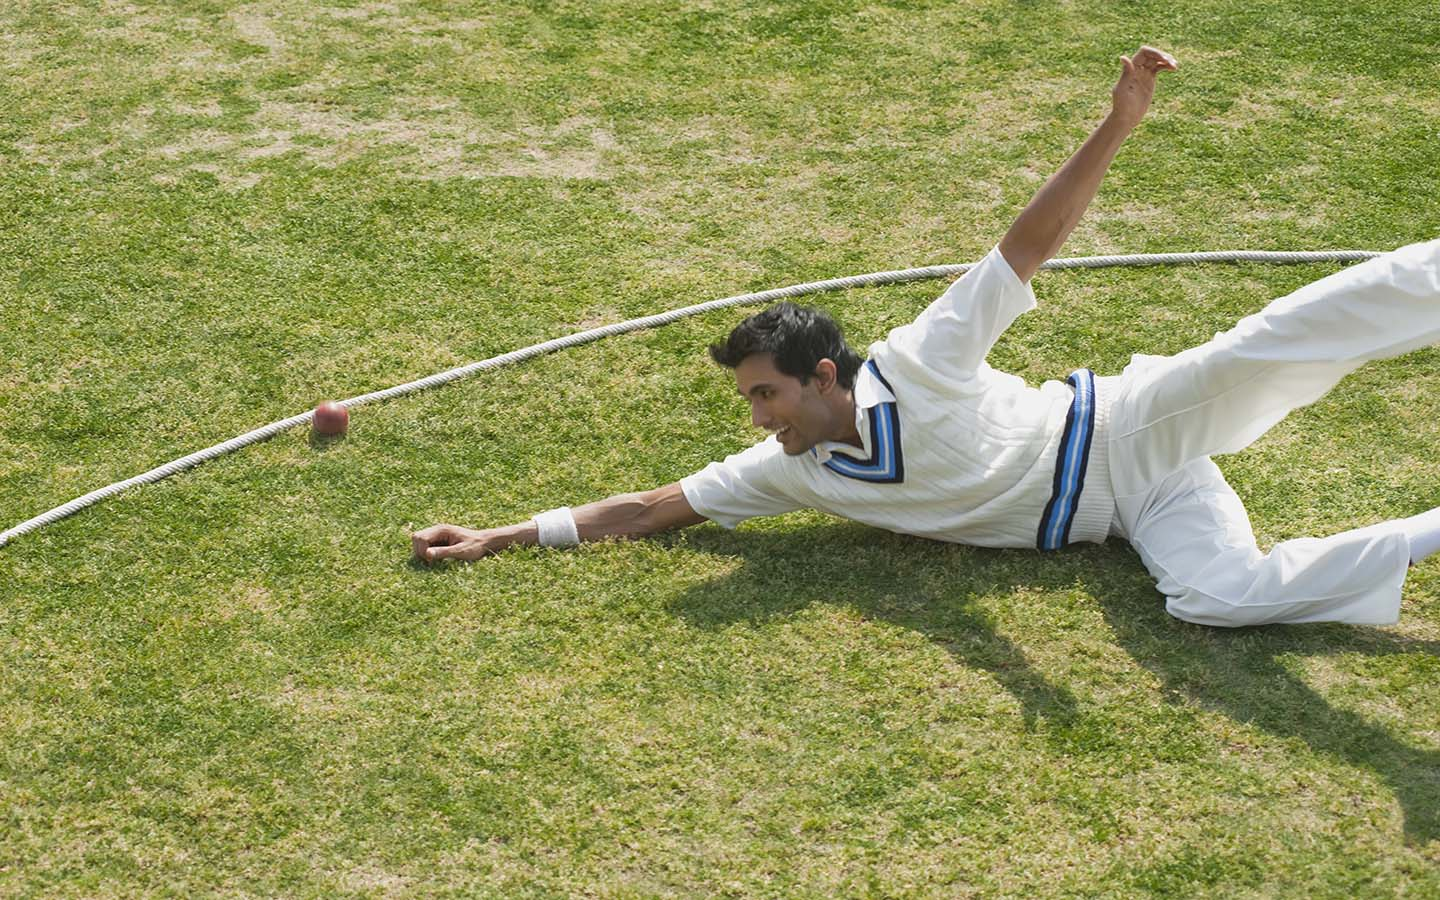 Fielder striving to save a boundary